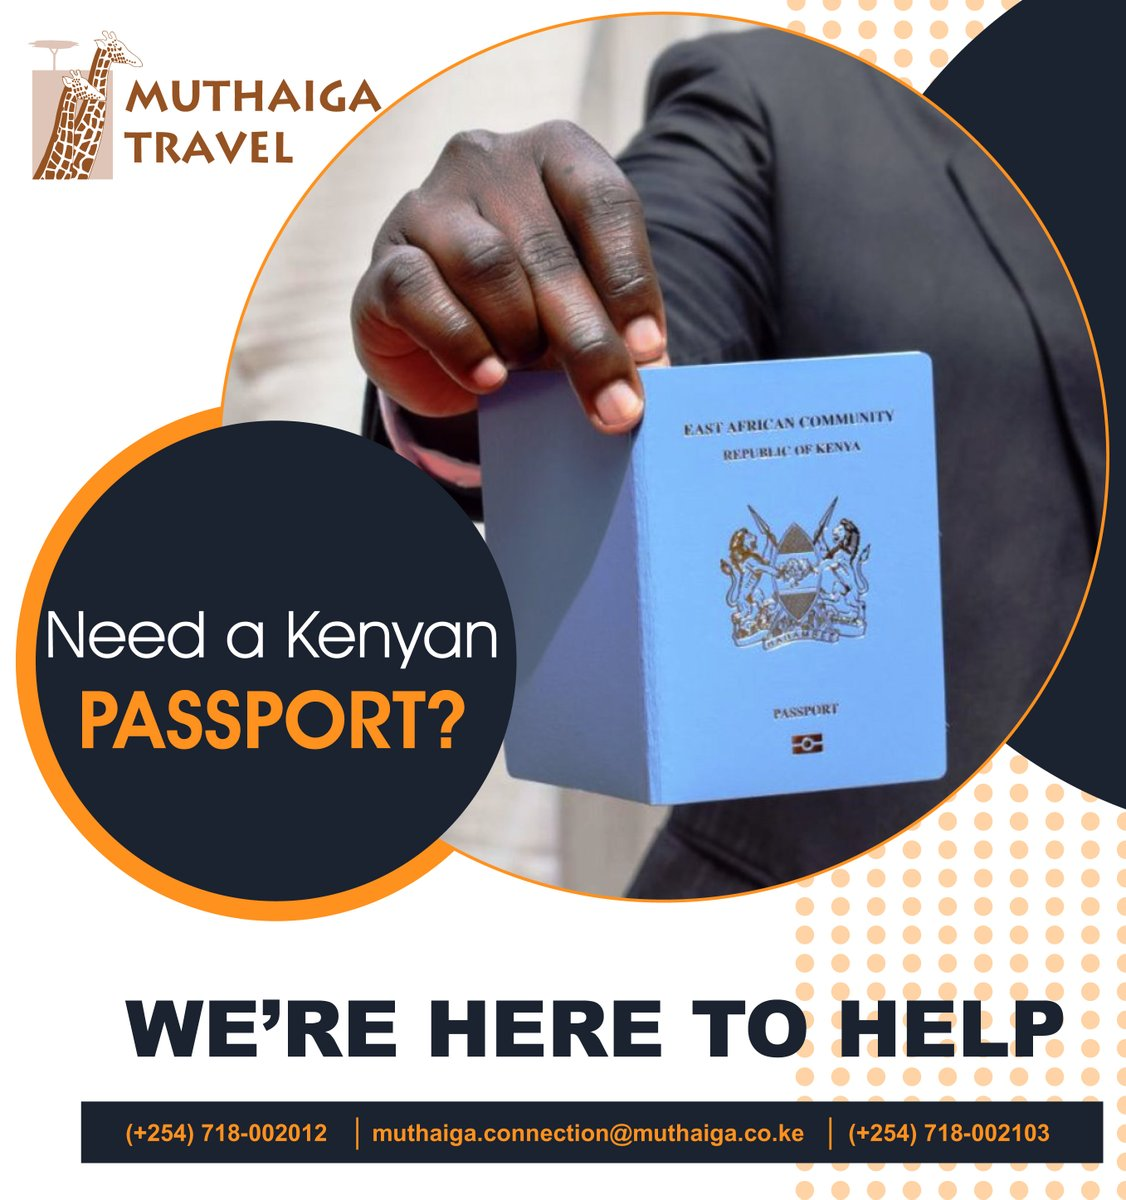 HAVE YOU APPLIED FOR YOUR E-PASSPORT?  E-Passport Application deadline was extended to 31 December 2021   Contact us for PASSPORT APPLICATION ASSISTANCE  ☎️ +254718002012 ☎️ +211922754601 📩 info@muthaiga.co.ke  #travel #ThursdayThoughts #trips #amazing